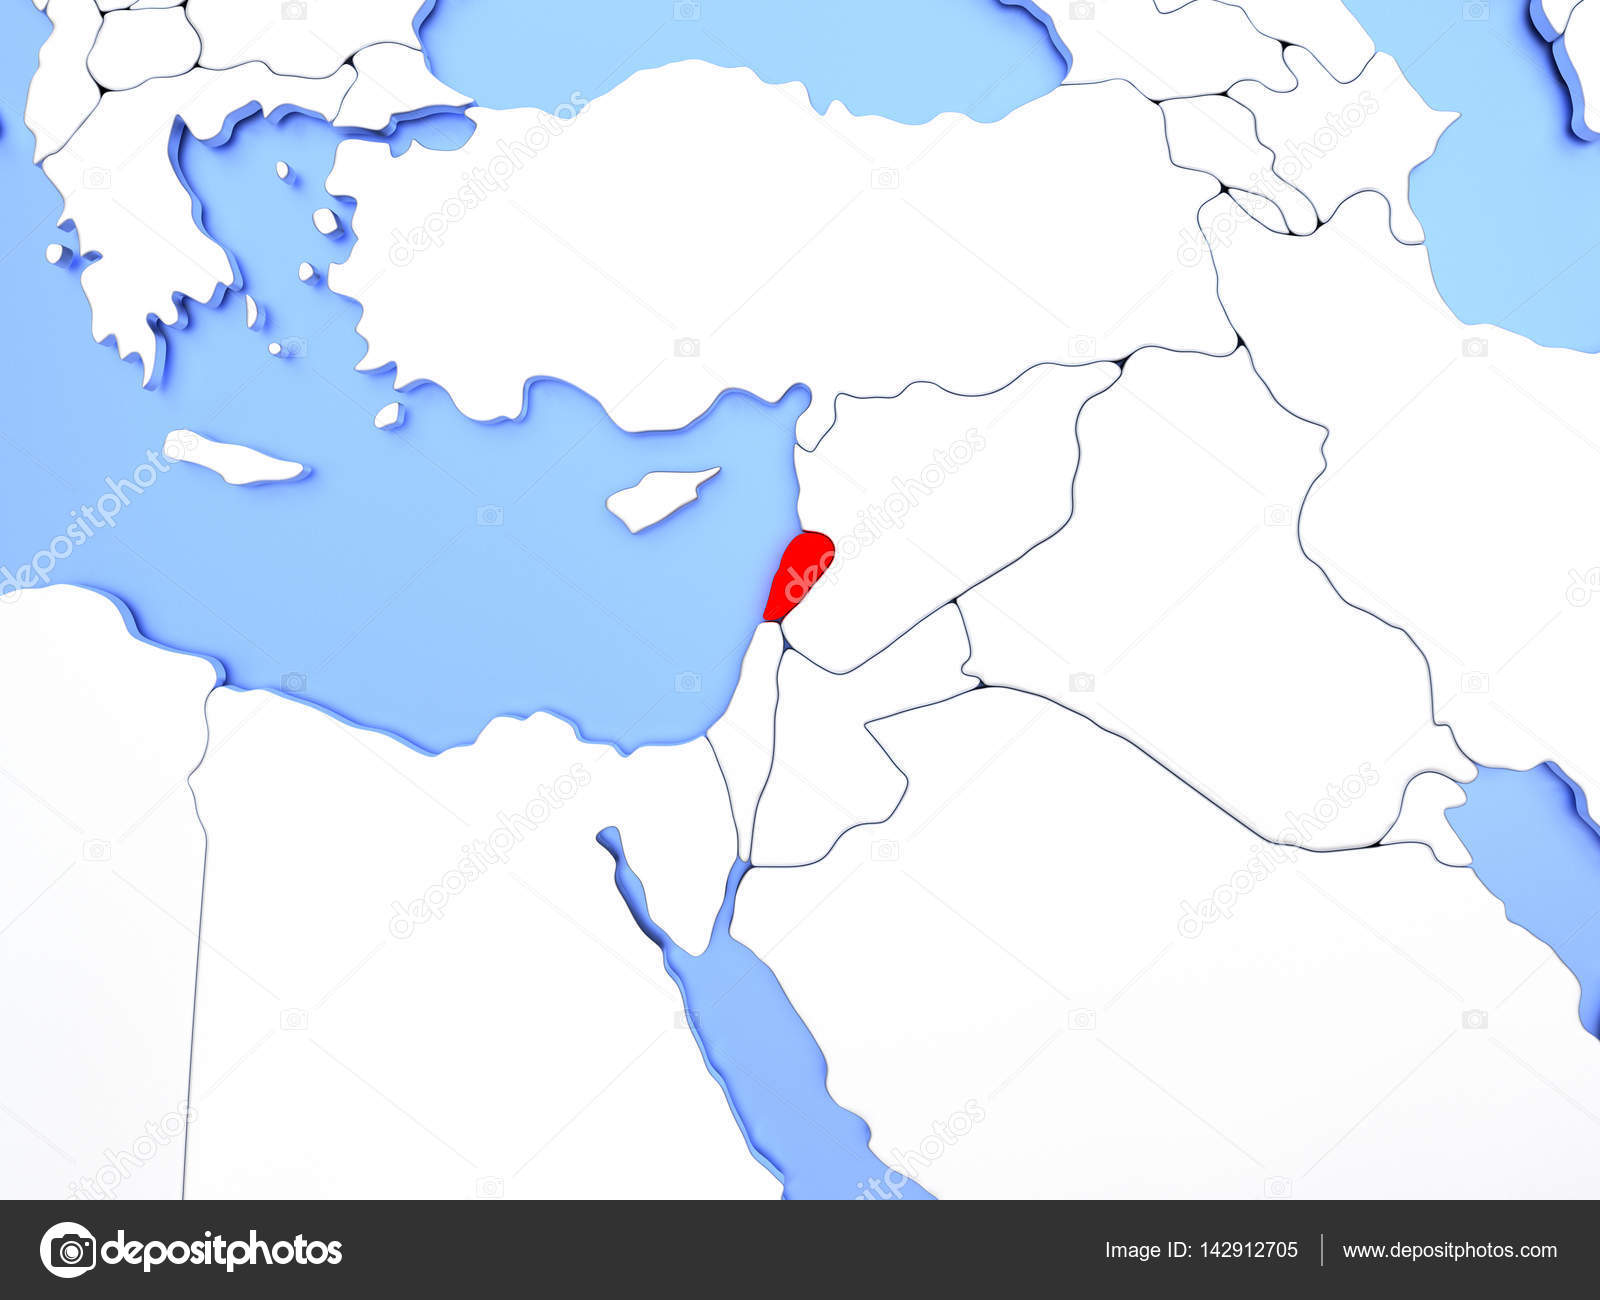 map of lebanon highlighted in red on simple shiny metallic map with clear country borders 3d illustration photo by tomgriger